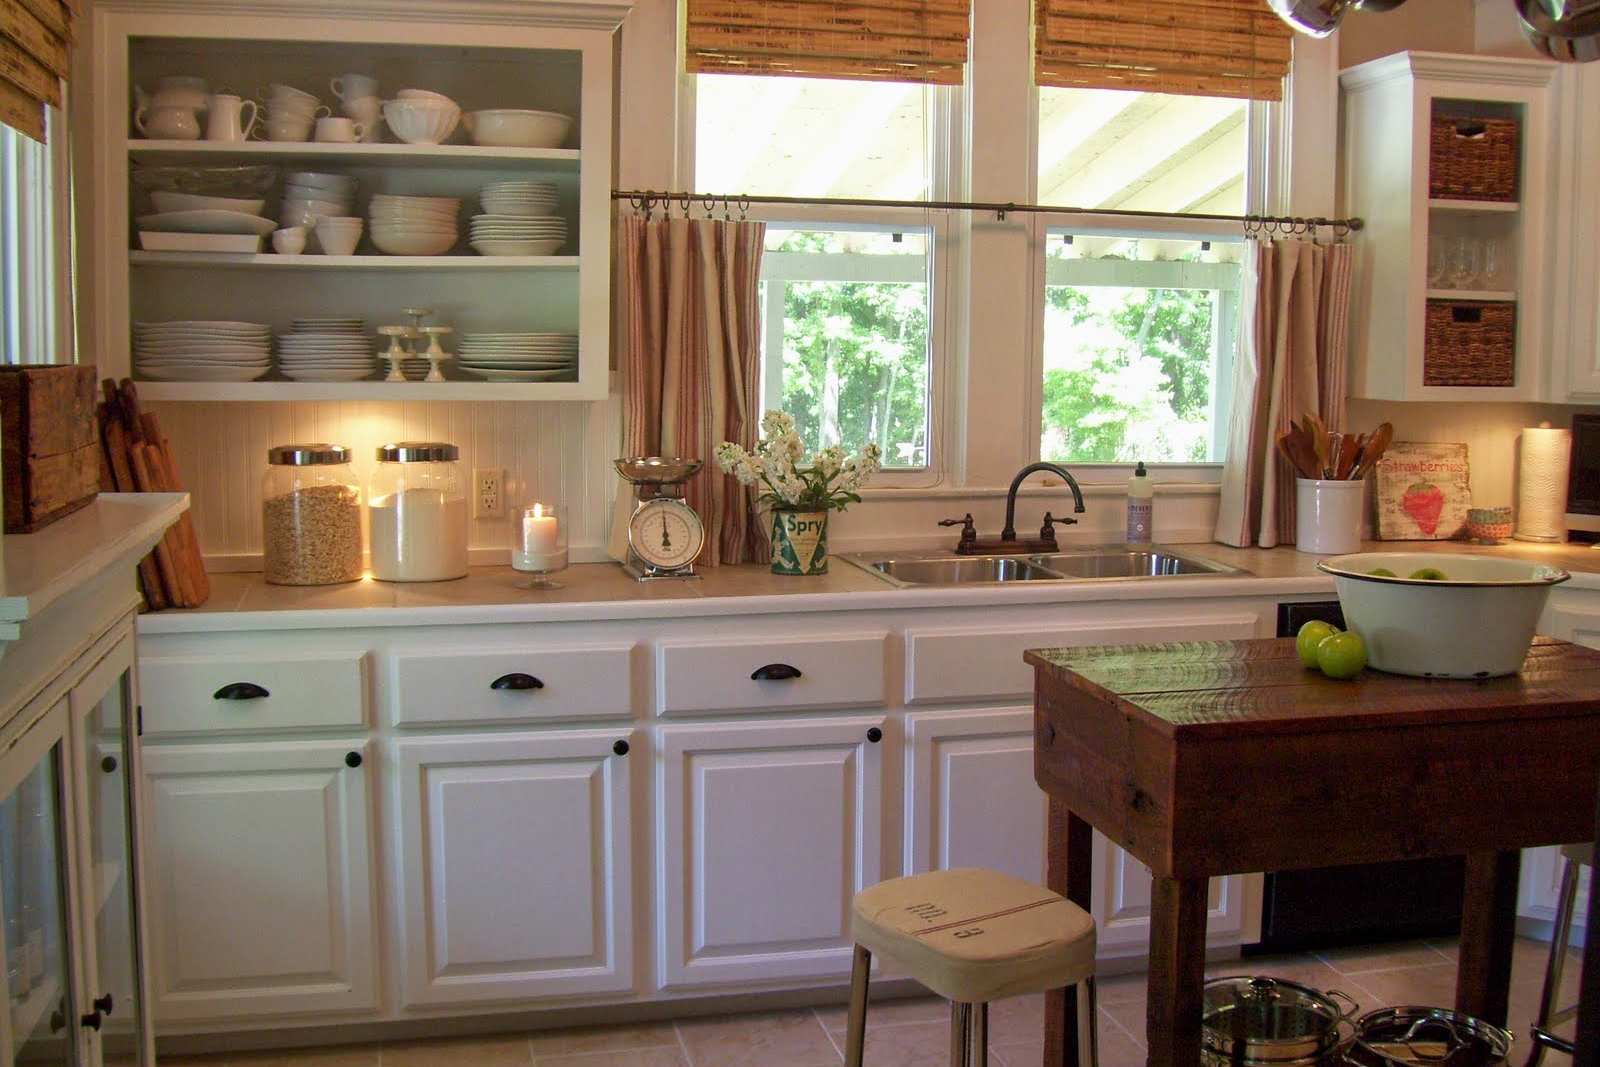 Kitchen Remodeling Idea Remodeling A Kitchen Do It Yourself Kitchen Remodel